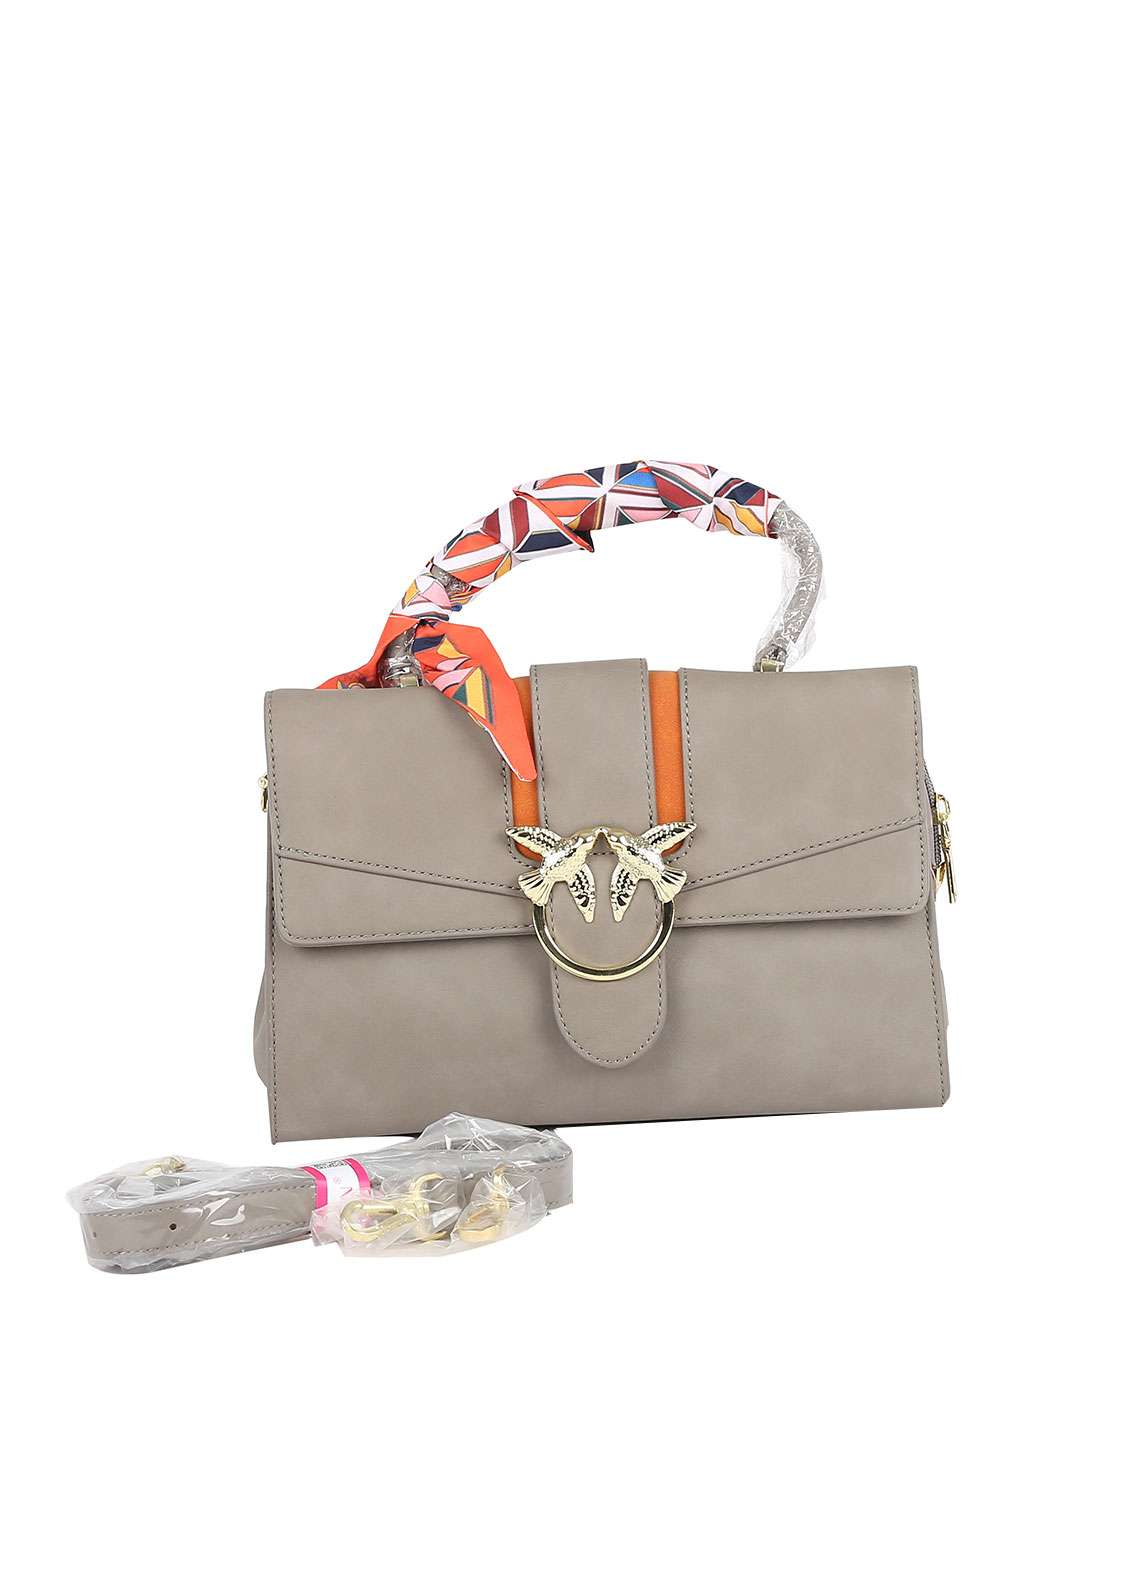 Susen PU Leather Satchels Bag for Women - Fawn with